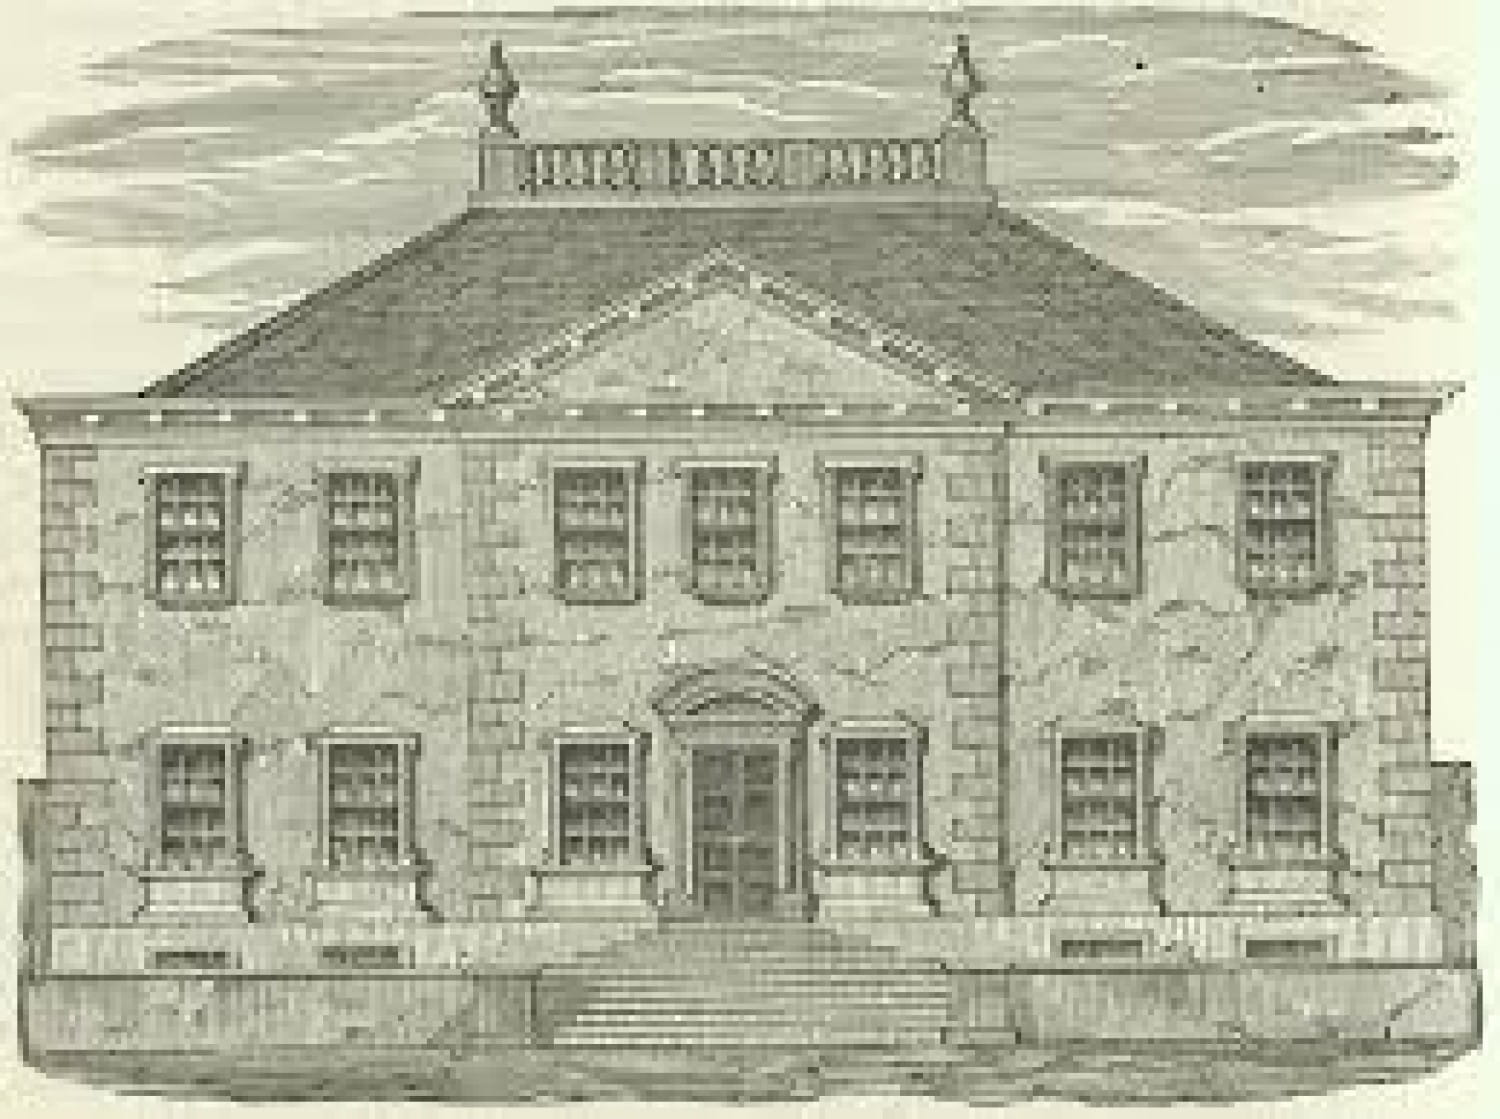 The old Shawfield Mansion on Trongate